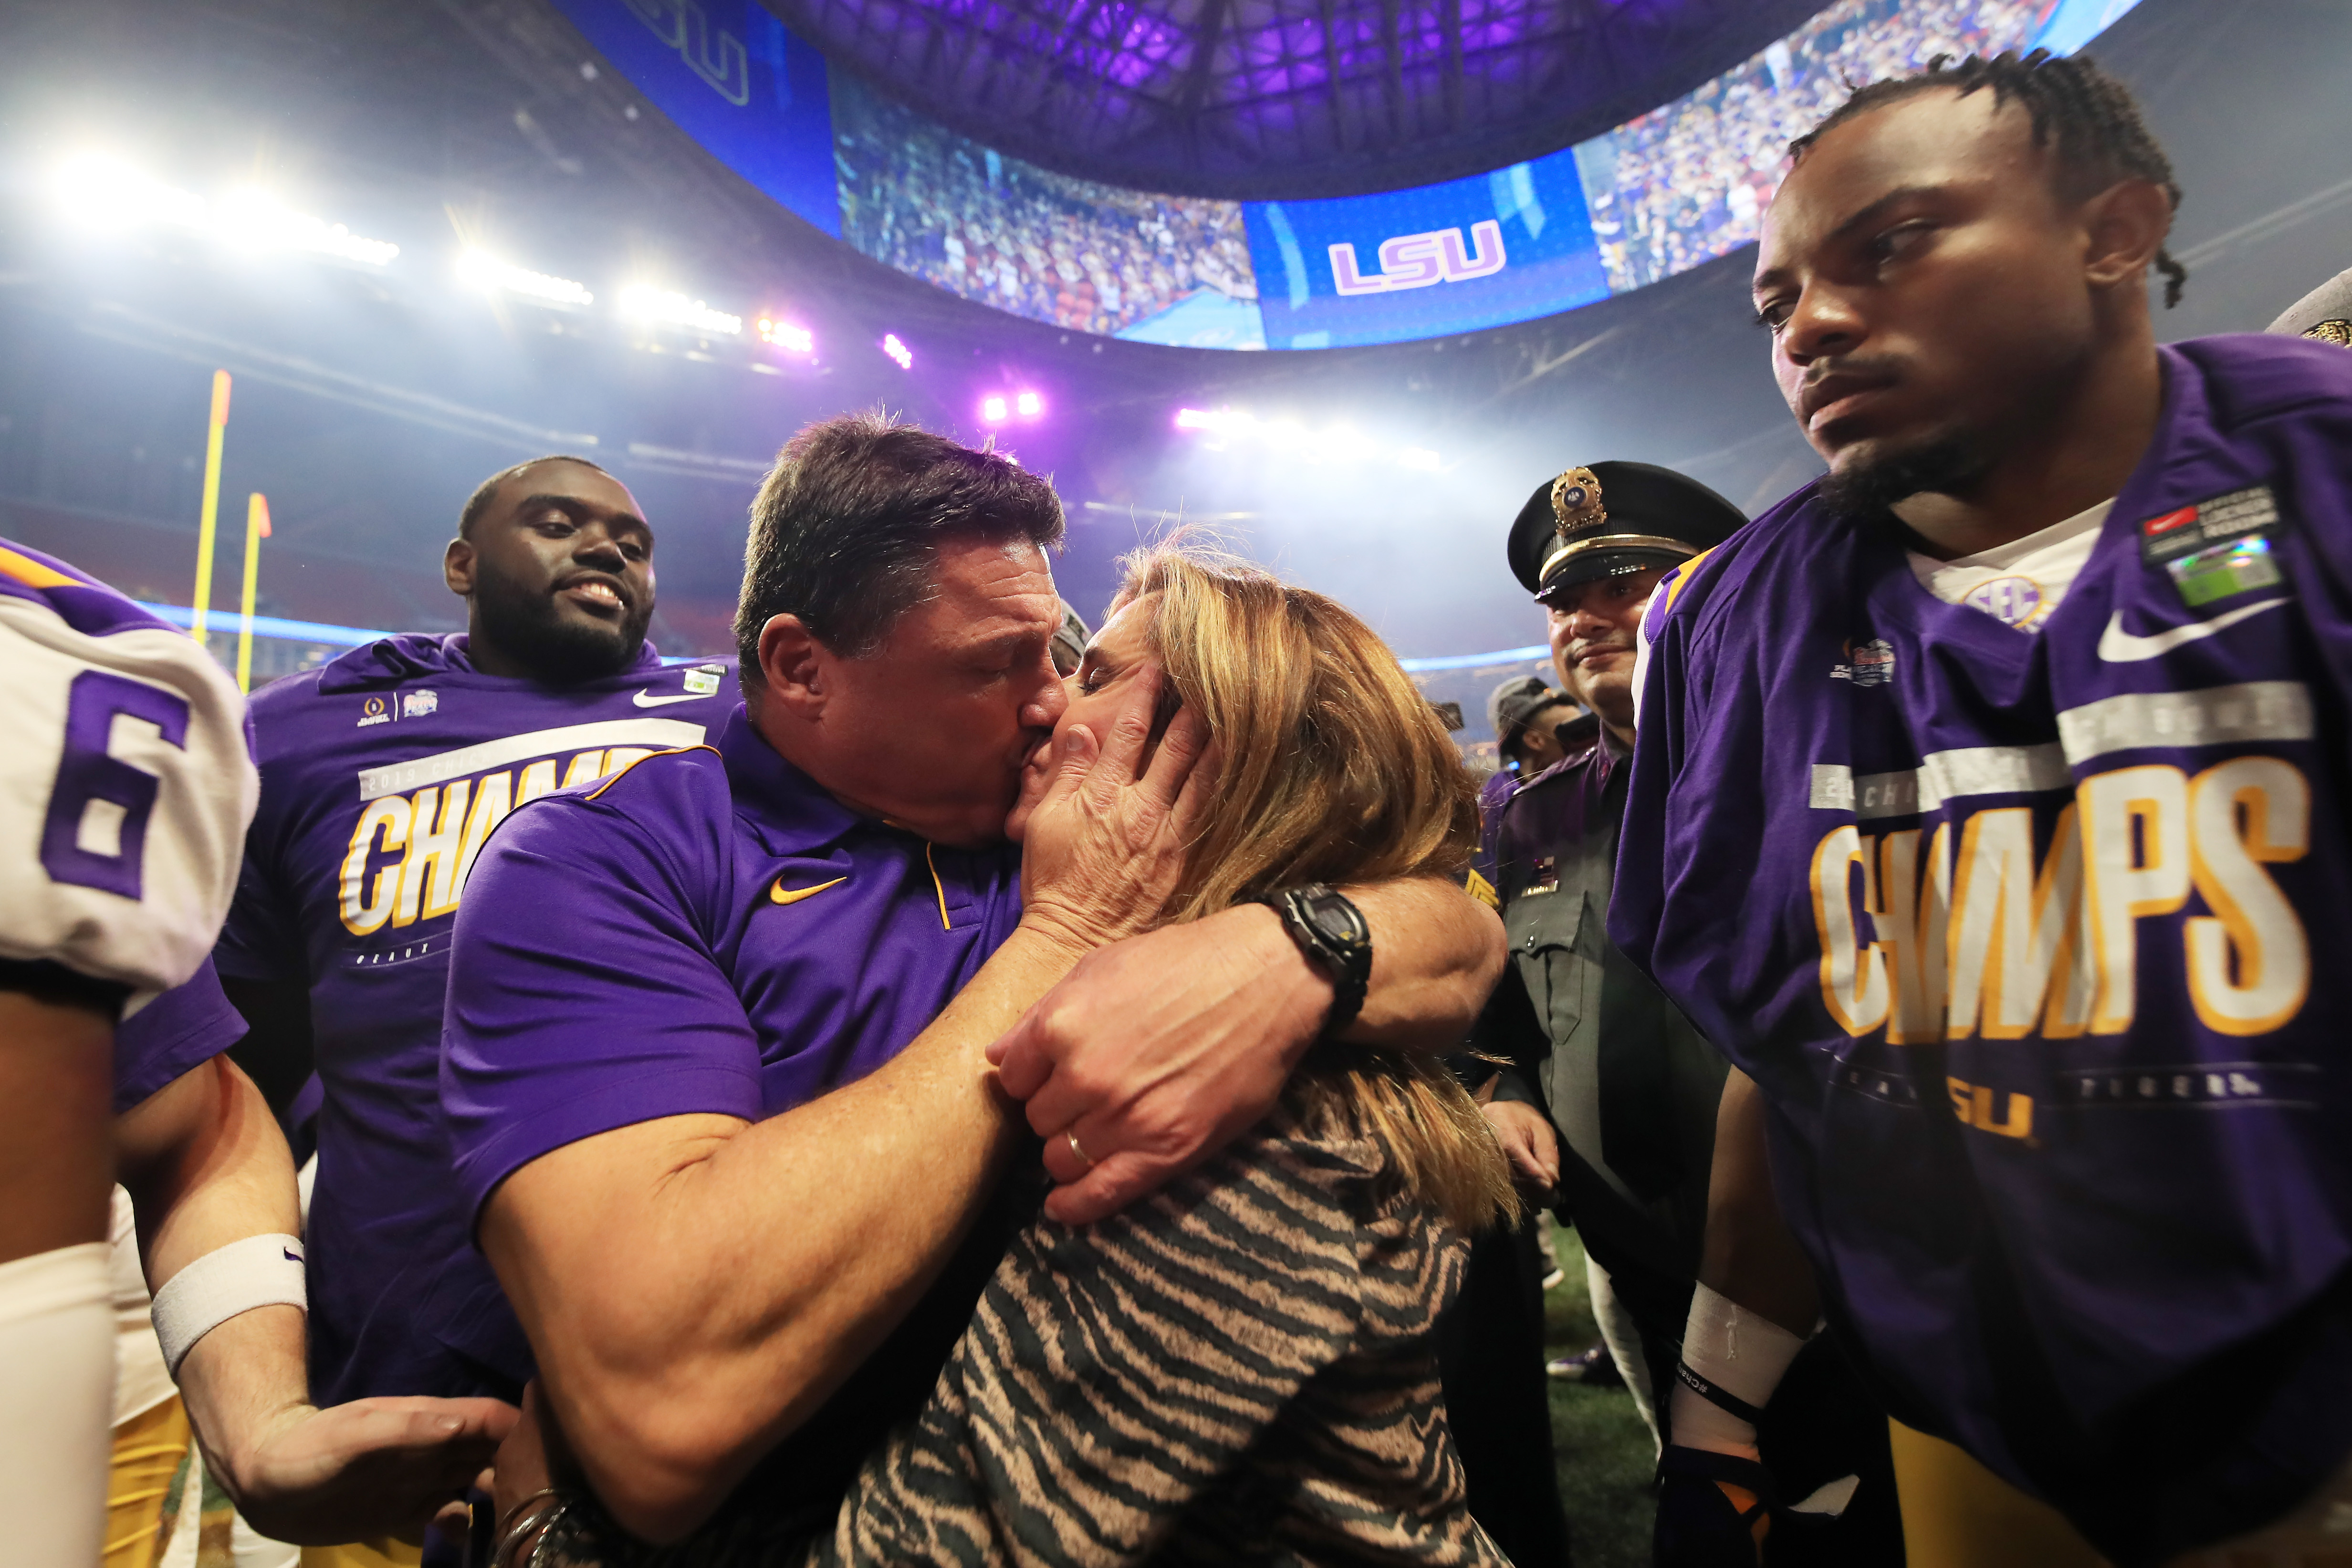 Ed Orgeron Earned A Thick Bonus Check For Winning The National Championship, Celebrates With Ham Sandwich